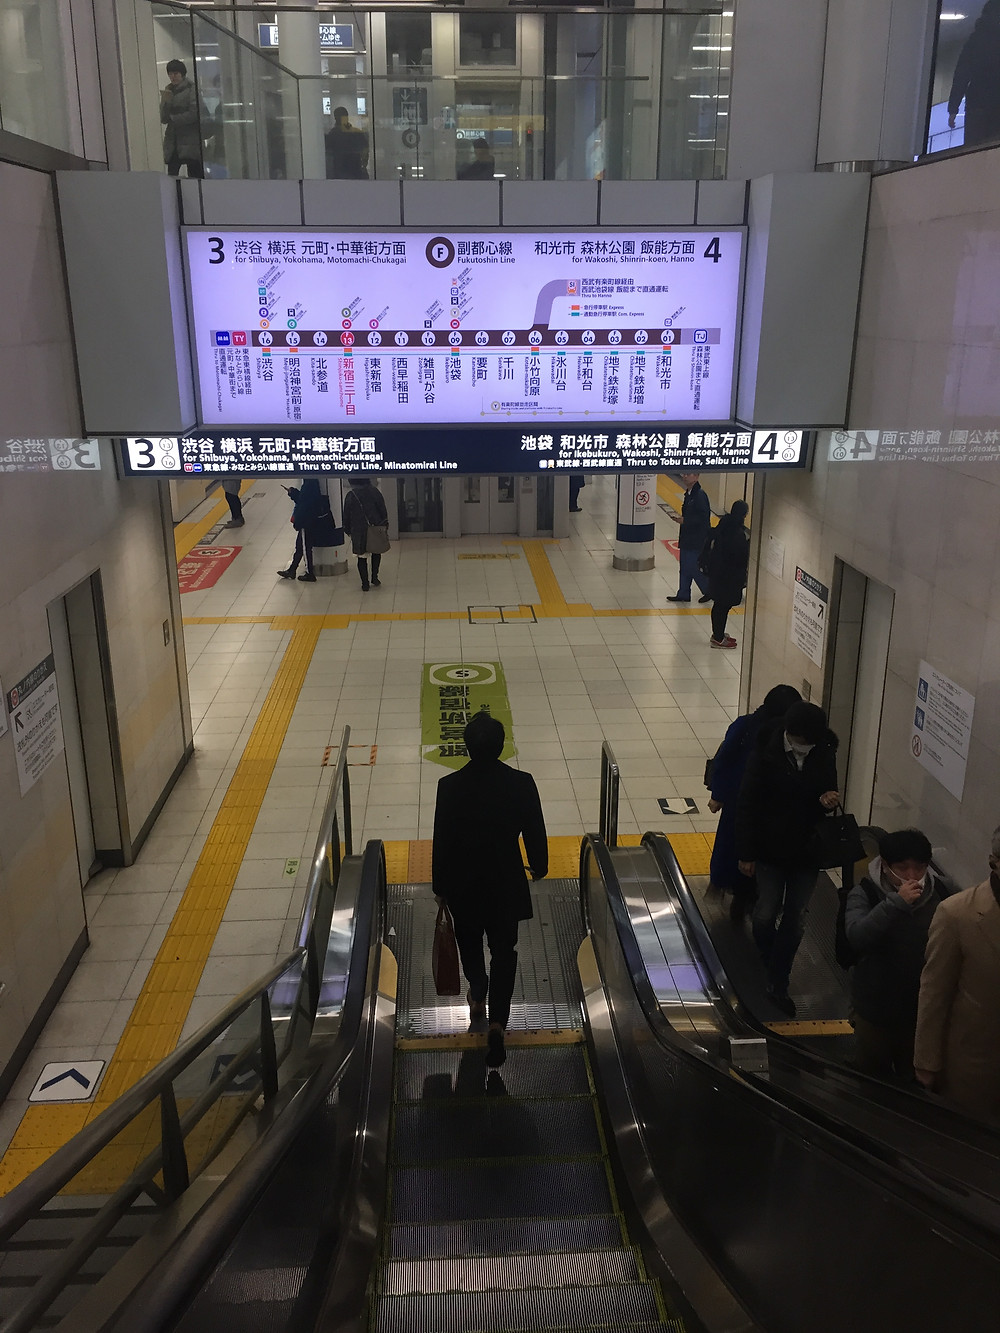 The metro in Tokyo - Ordinary Brussels